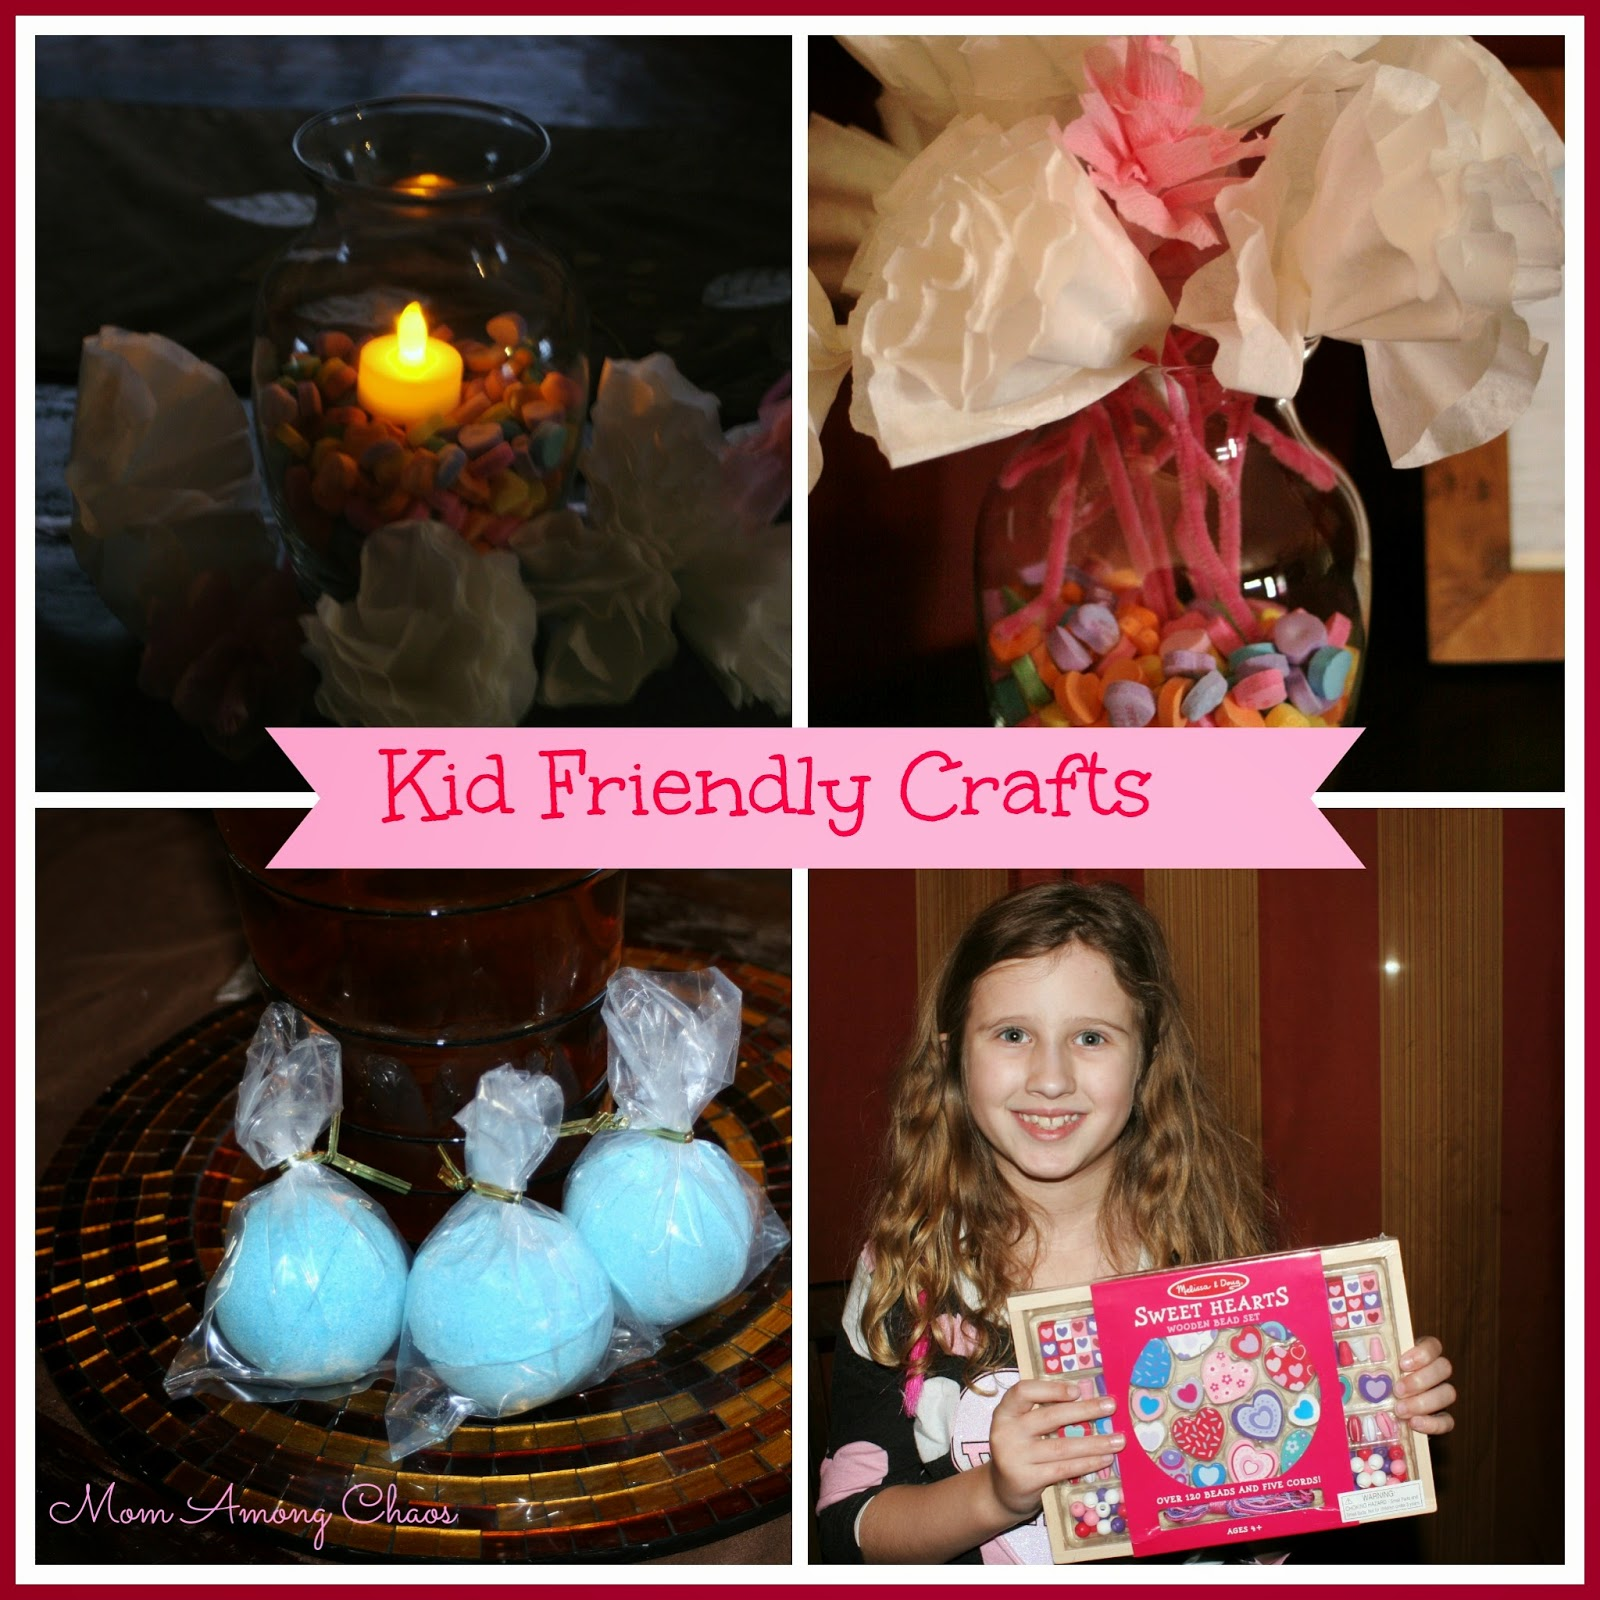 kids, kid friendly, kid friendly crafts, crafts, bath bombs, vase, Valentine's, diy, bracelets